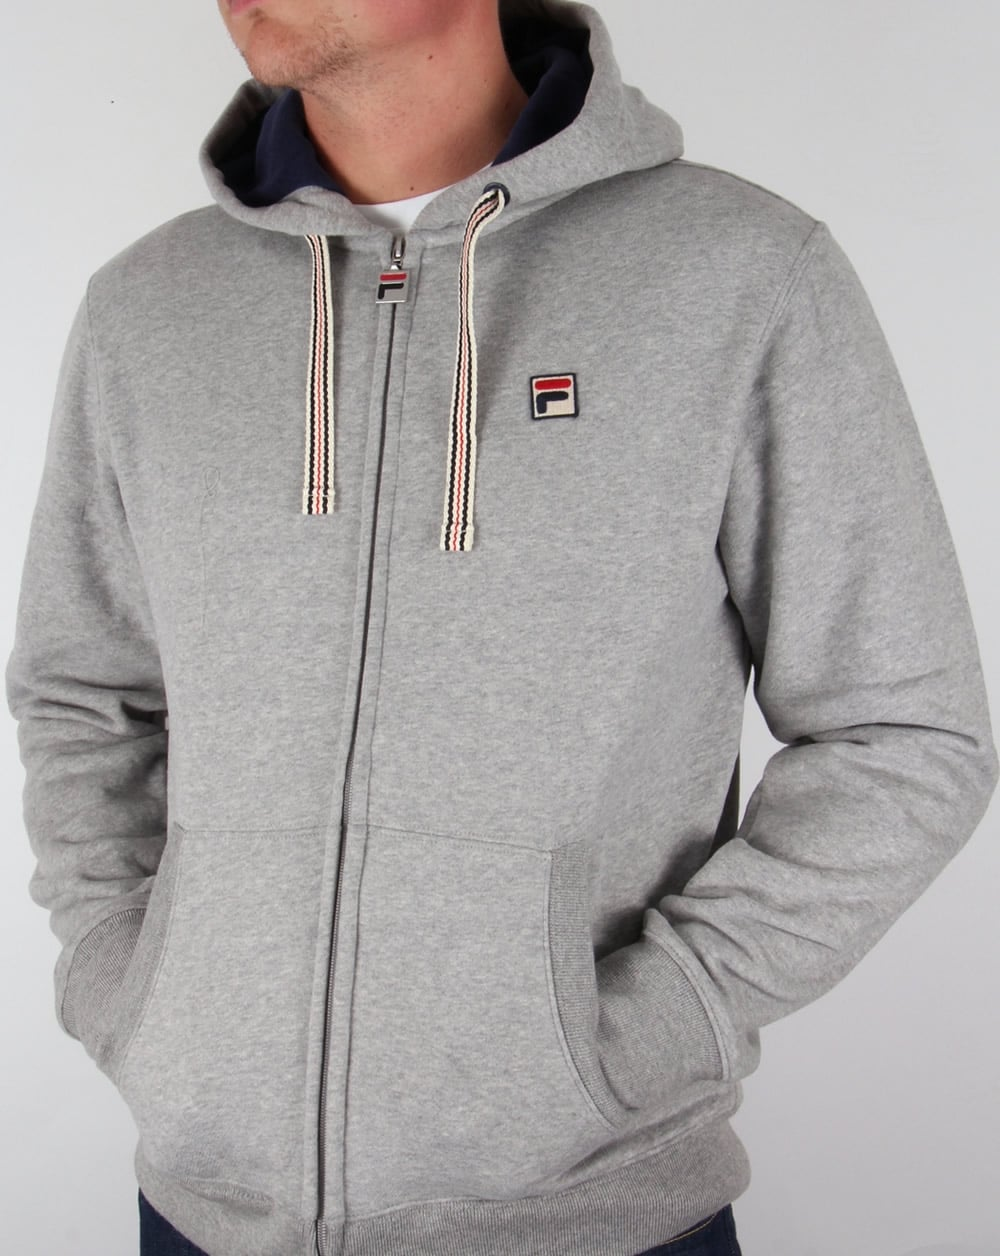 d0a3a1562014 Fila Vintage Bagnoli Hoodie Grey,hooded,jacket,track,top,mens